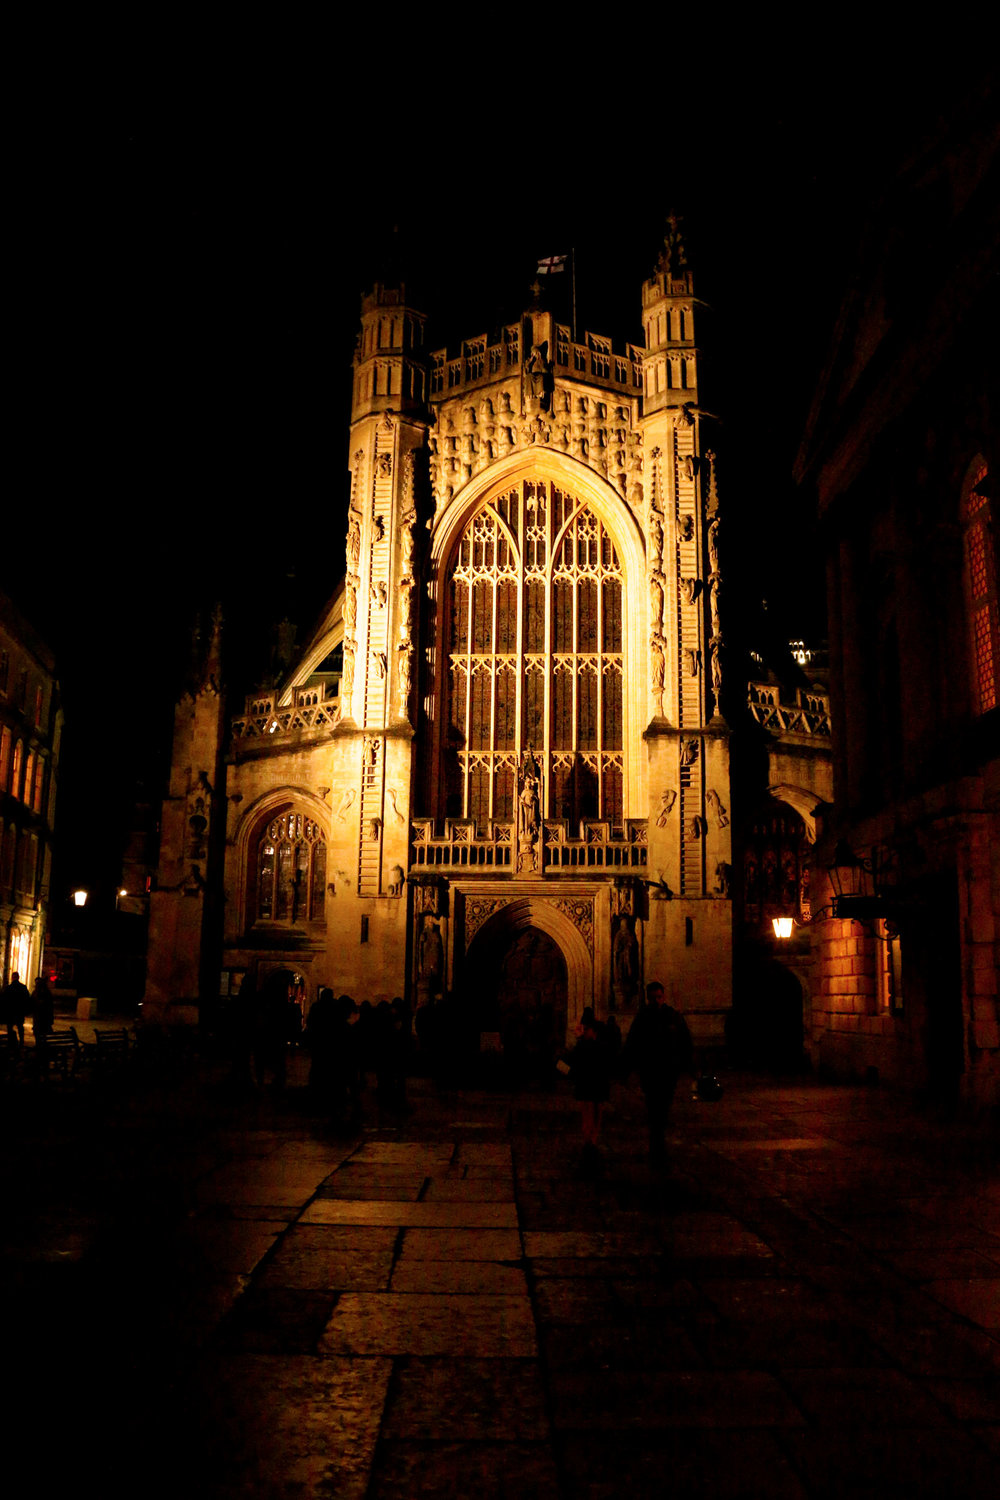 bath-abbey-night2)web.jpg